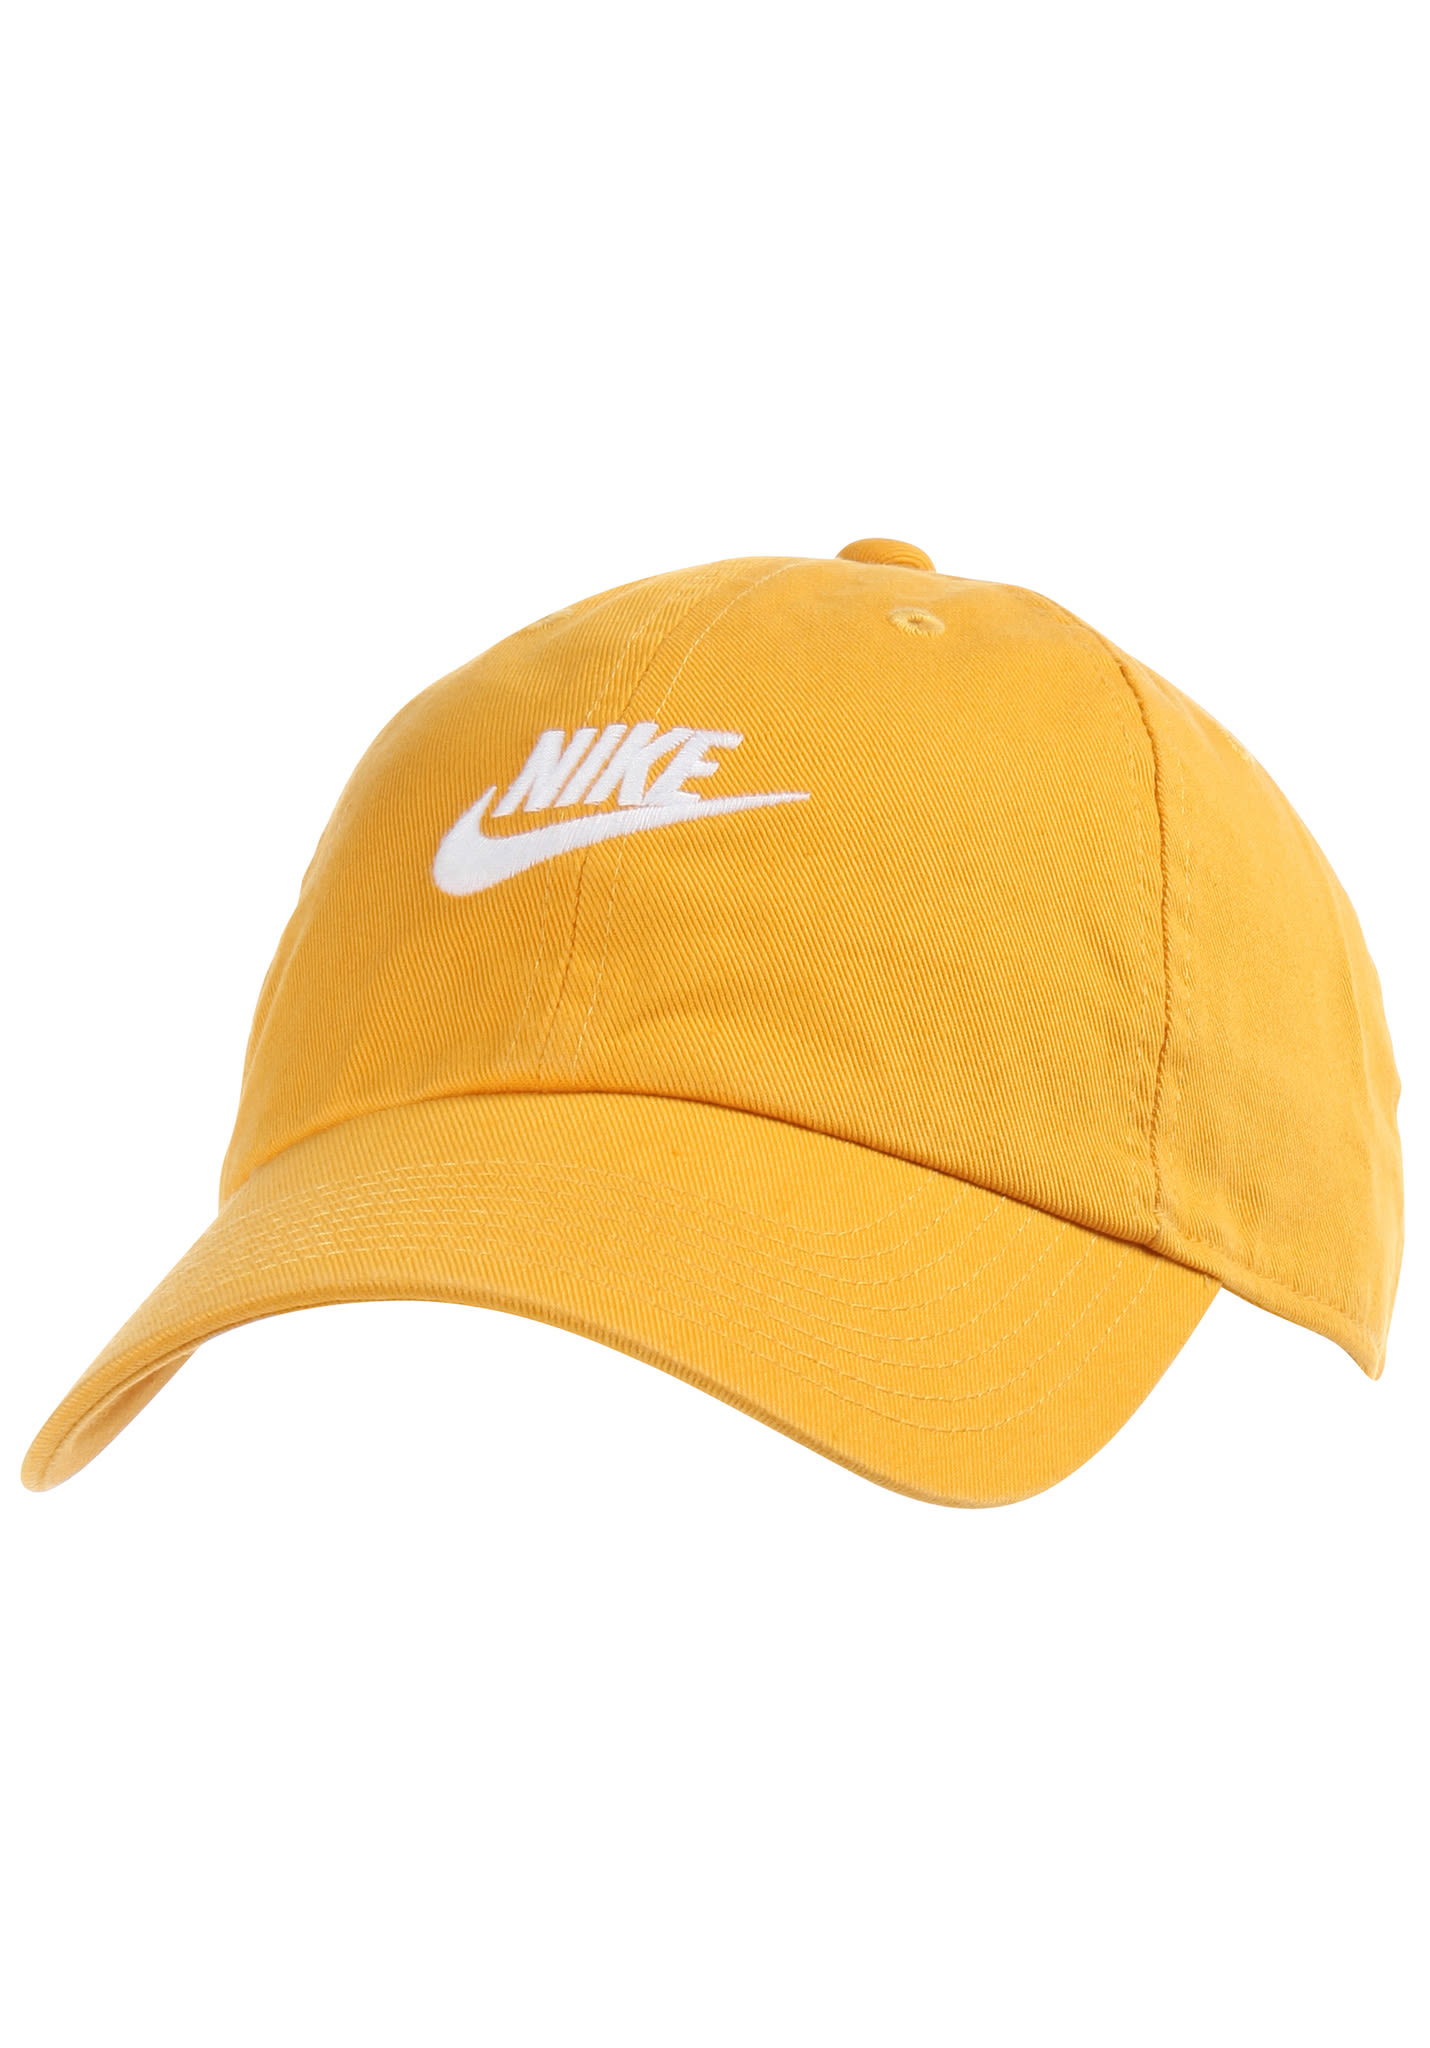 77ee89df97b NIKE SPORTSWEAR H86 Futura Washed - Strapback Cap - Yellow - Planet Sports